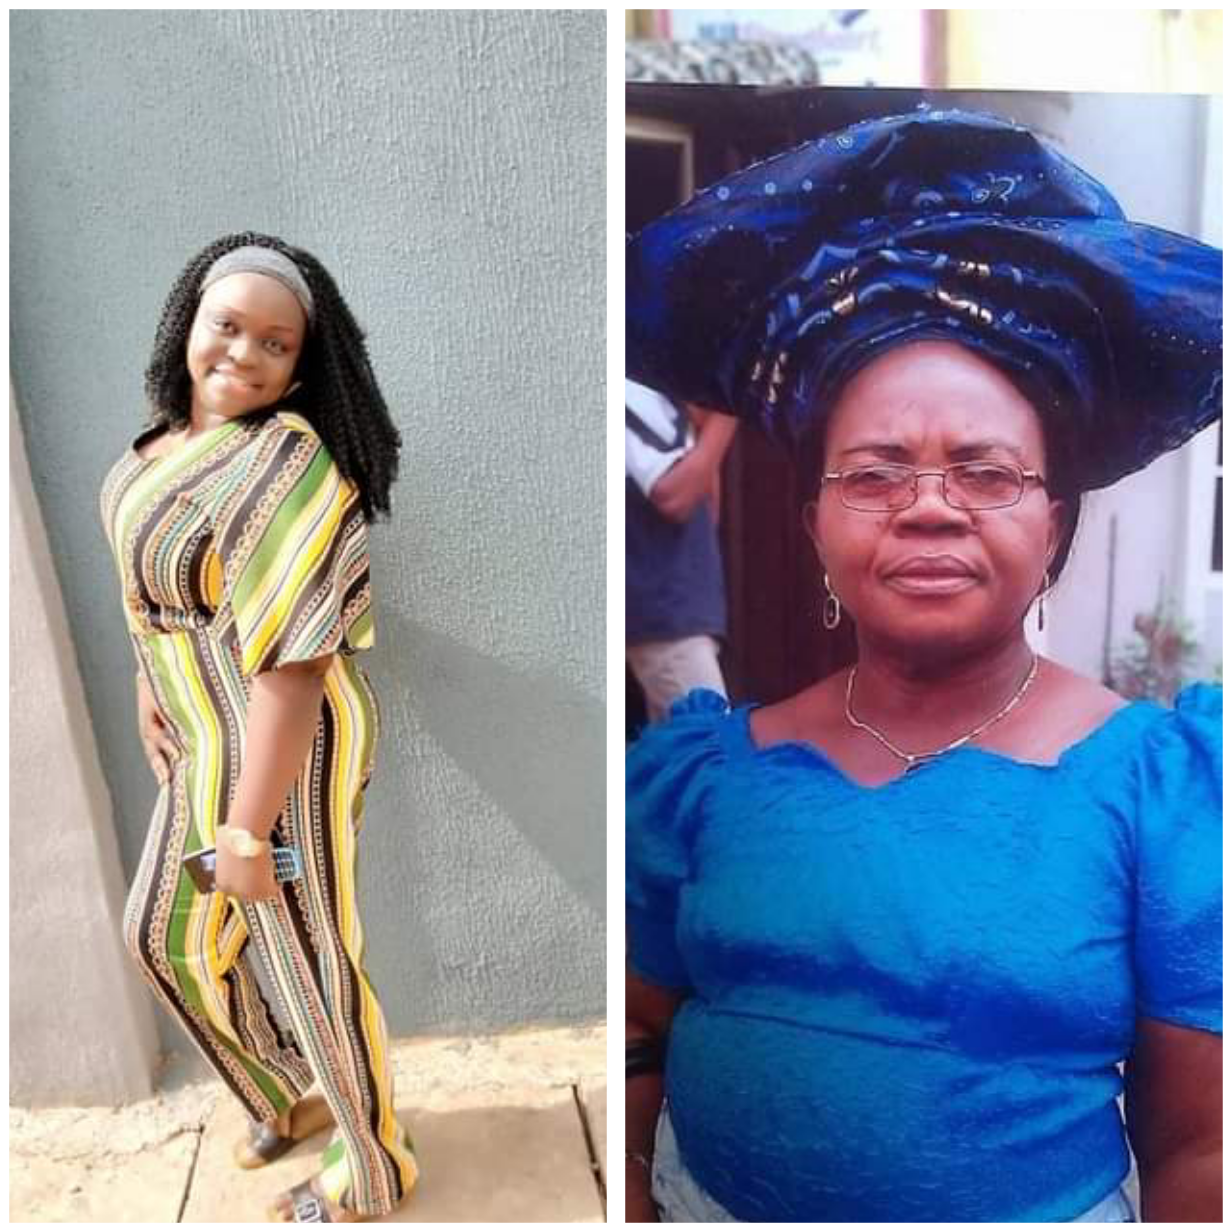 NIGERIAN WOMAN DIES SIX DAYS AFTER HER MOTHER'S DEATH